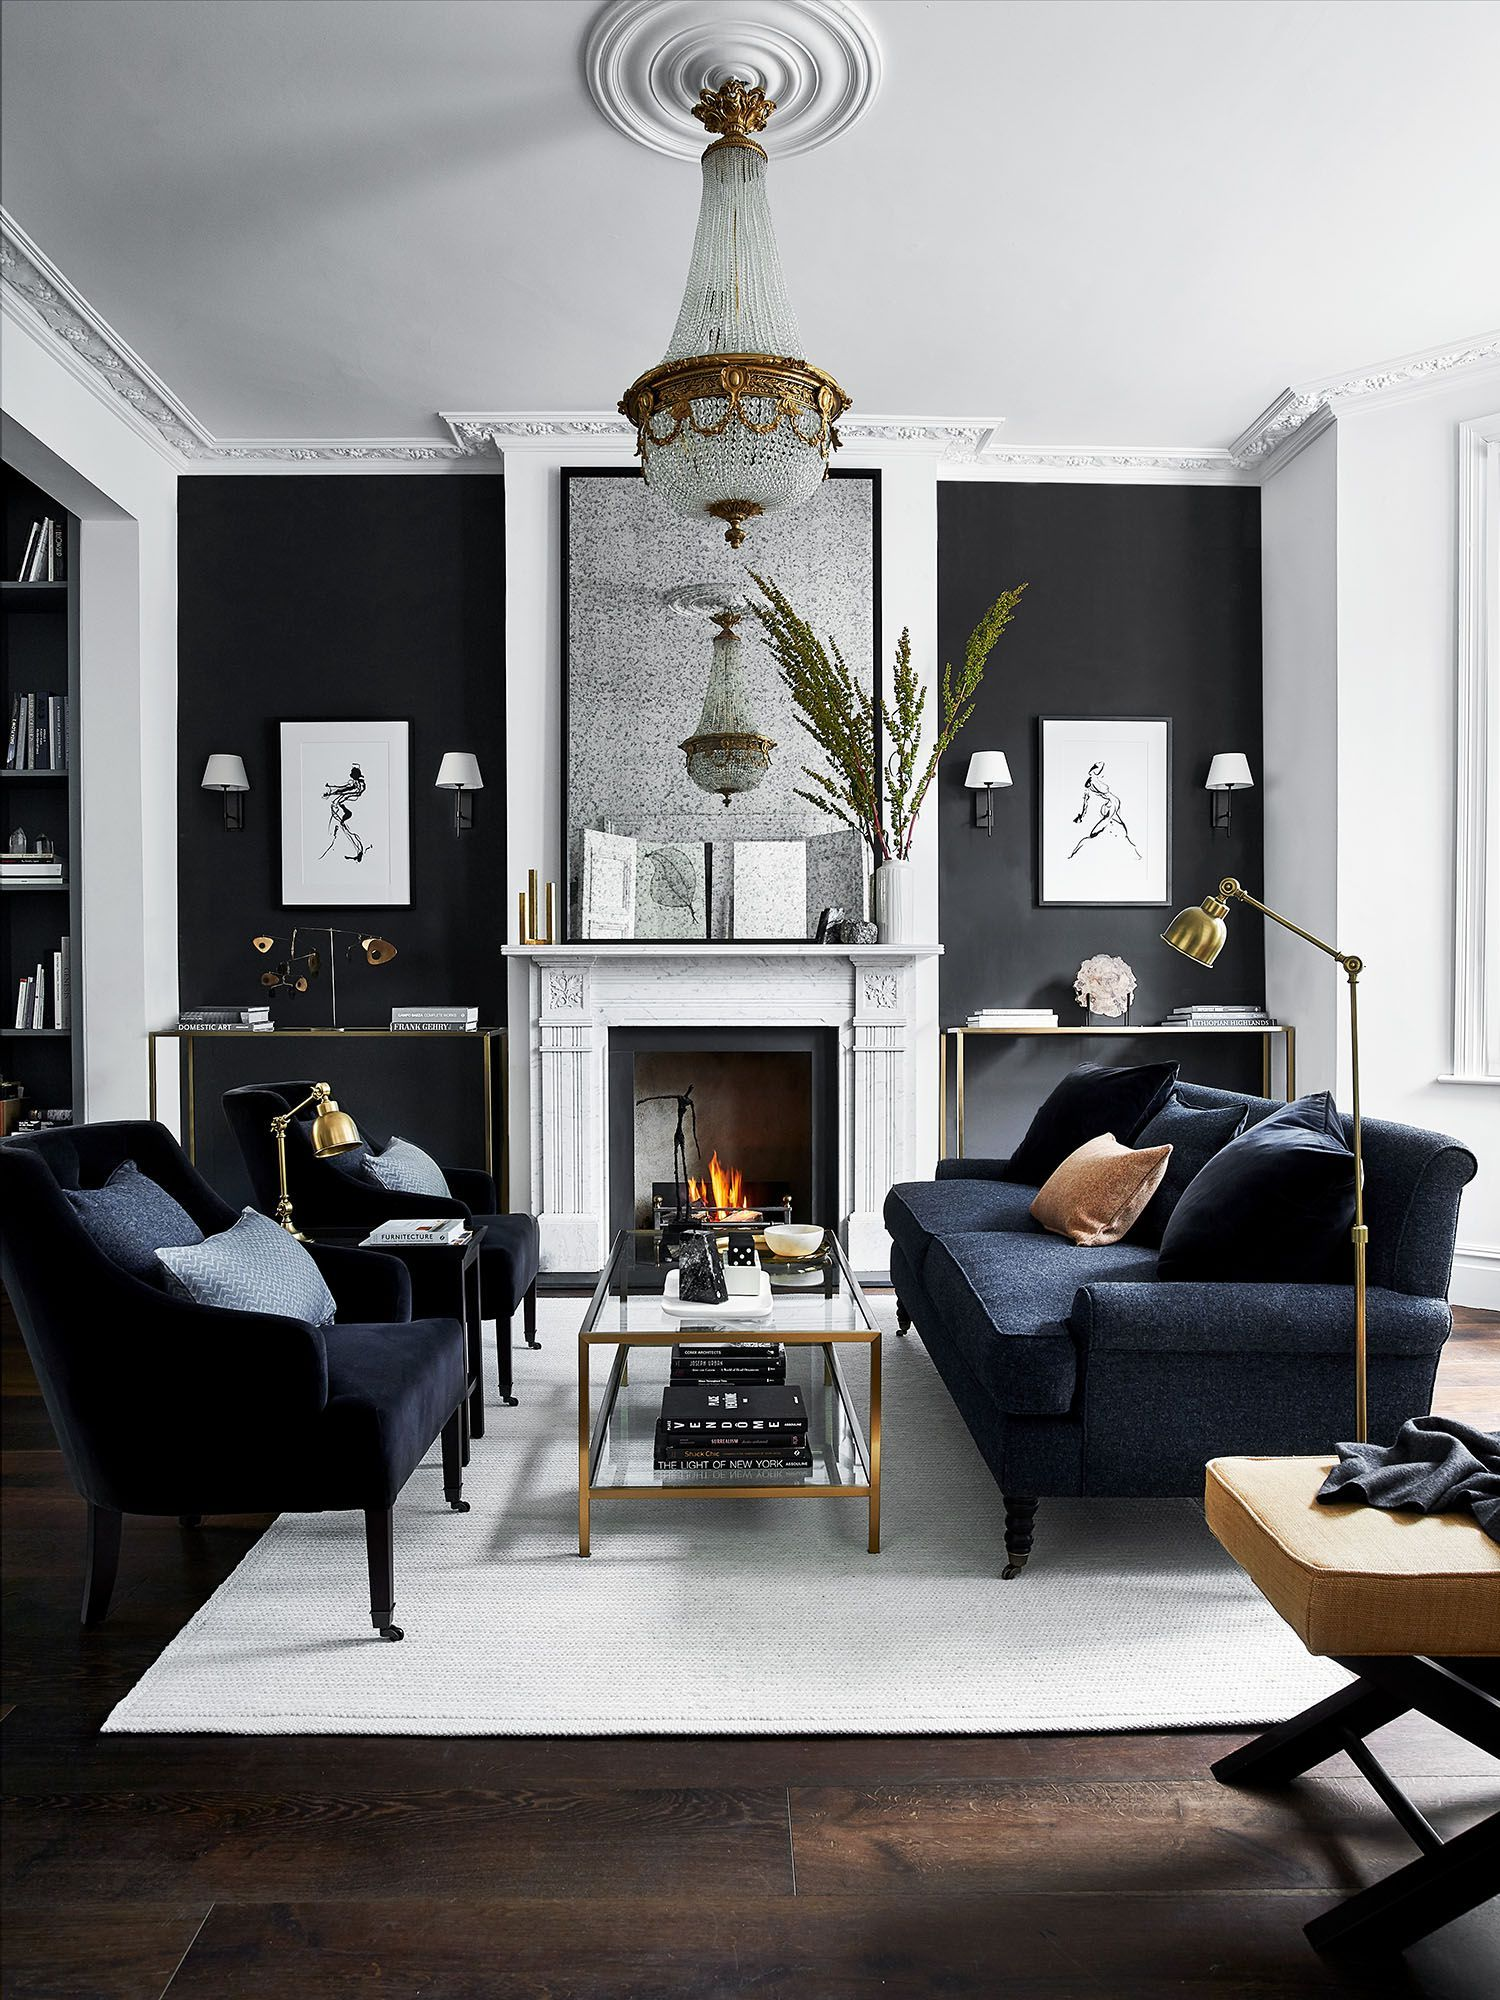 16 Black Living Room Ideas To Tempt You Over To The Dark Side Living Room Sets Furniture Modern Living Room Furniture Sets Living Room Grey